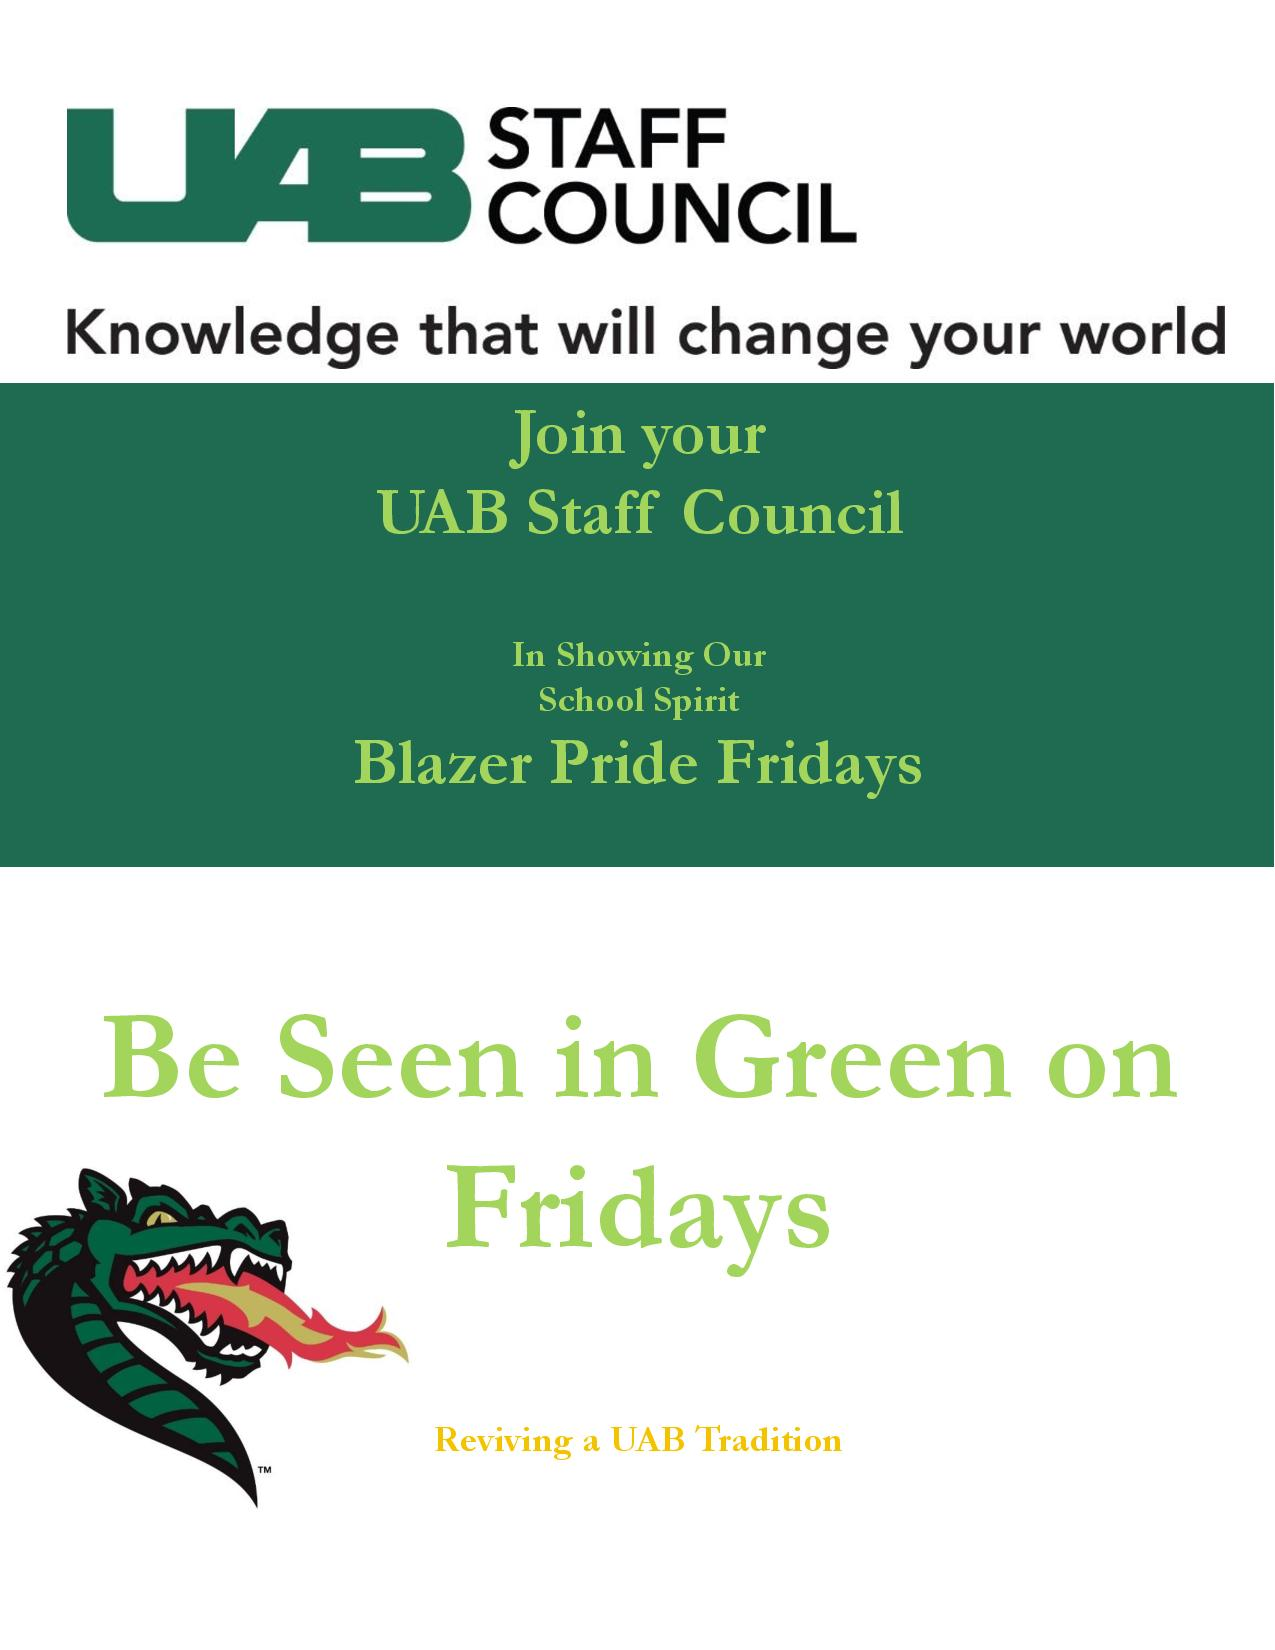 Staff Council - Be Seen in Green - Blaze